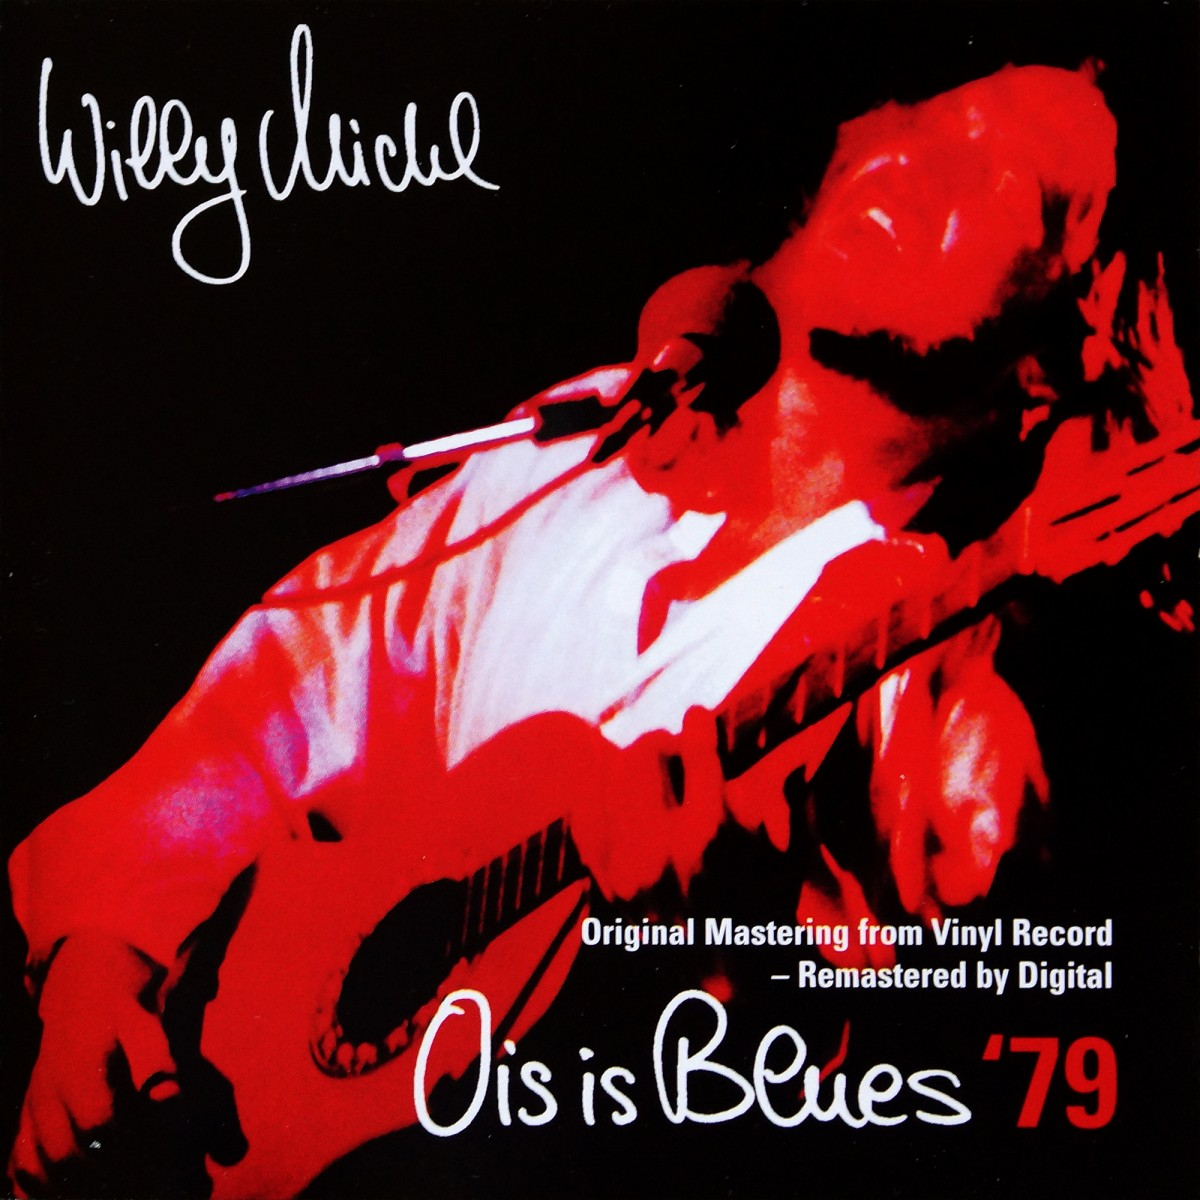 Michl, Willy: Ois is Blues '79 (1979)